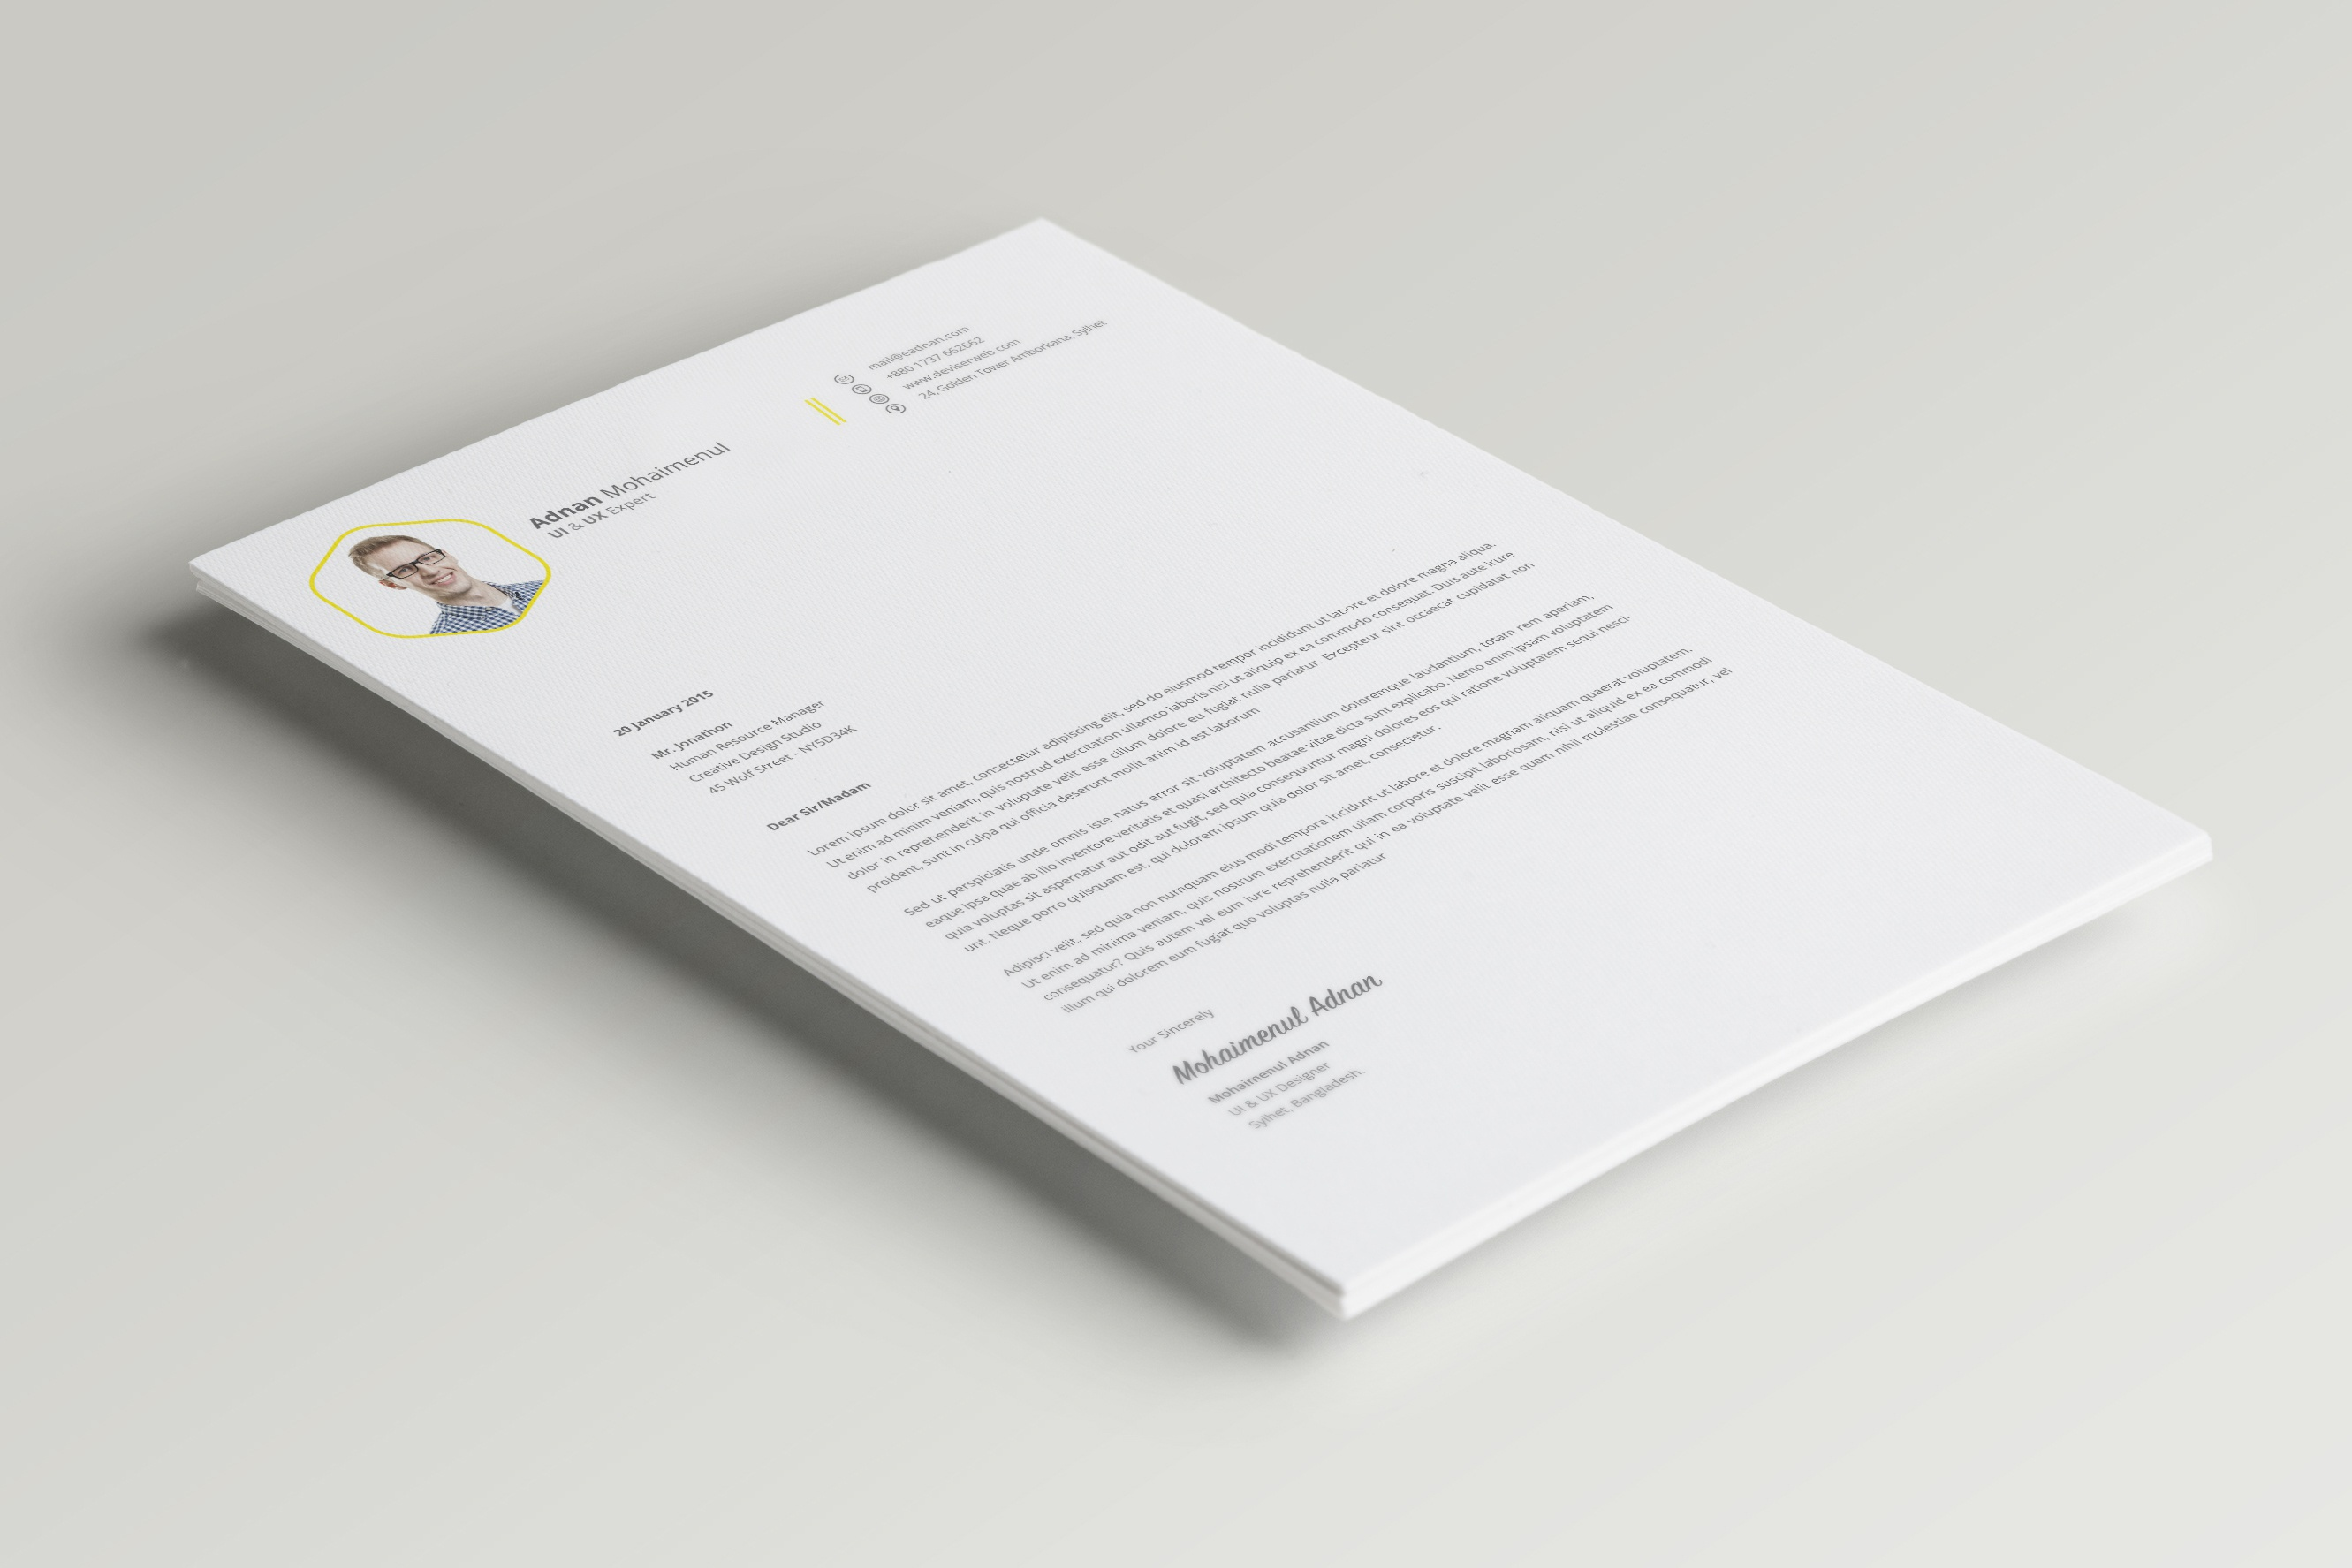 03 Cv Resume Cover Letter Psd Free Download Psdboom.com  Free Cover Letter Downloads